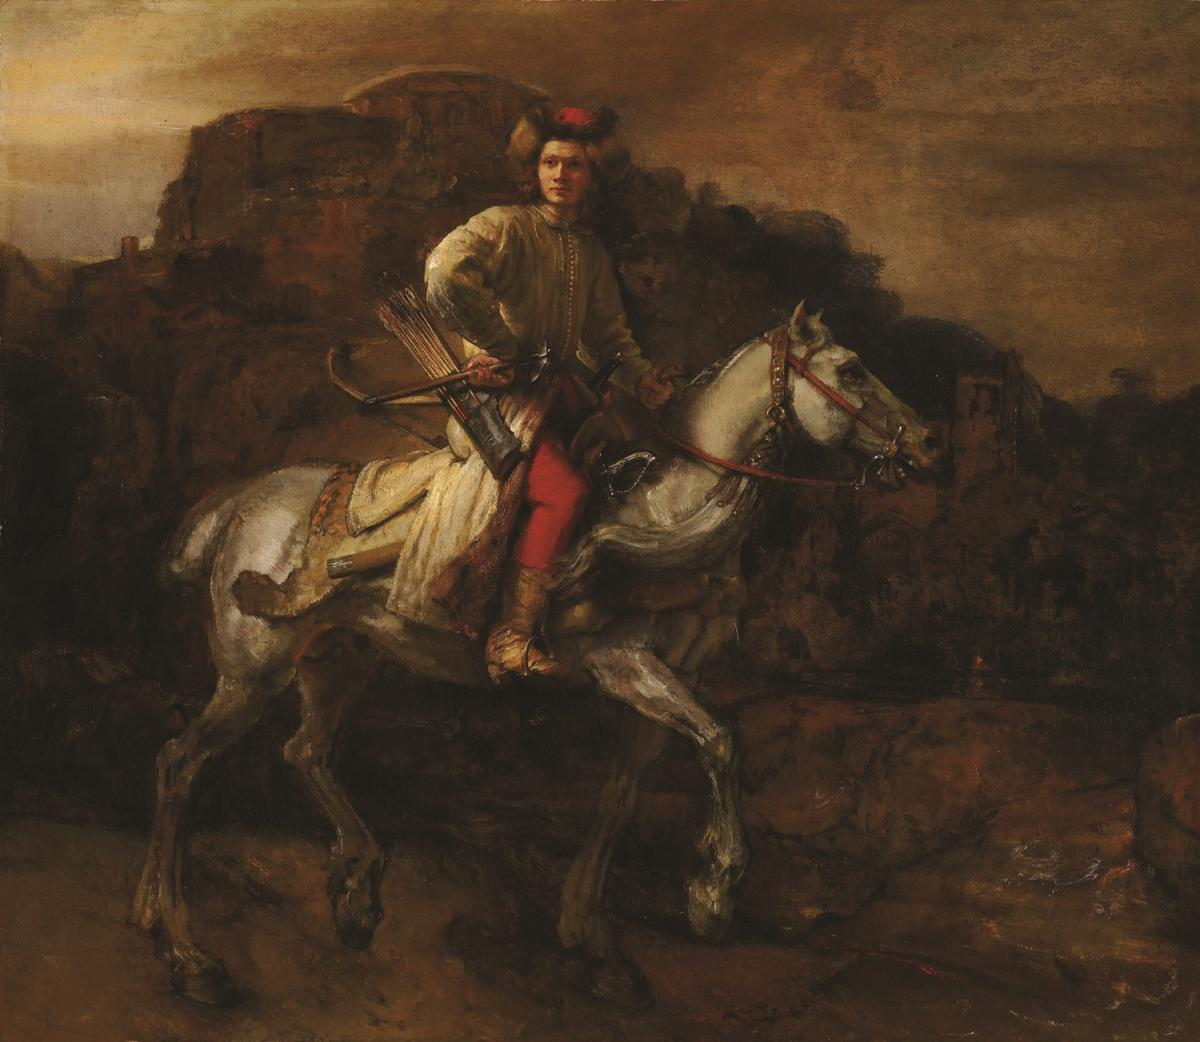 Oil painting of a man on a horse